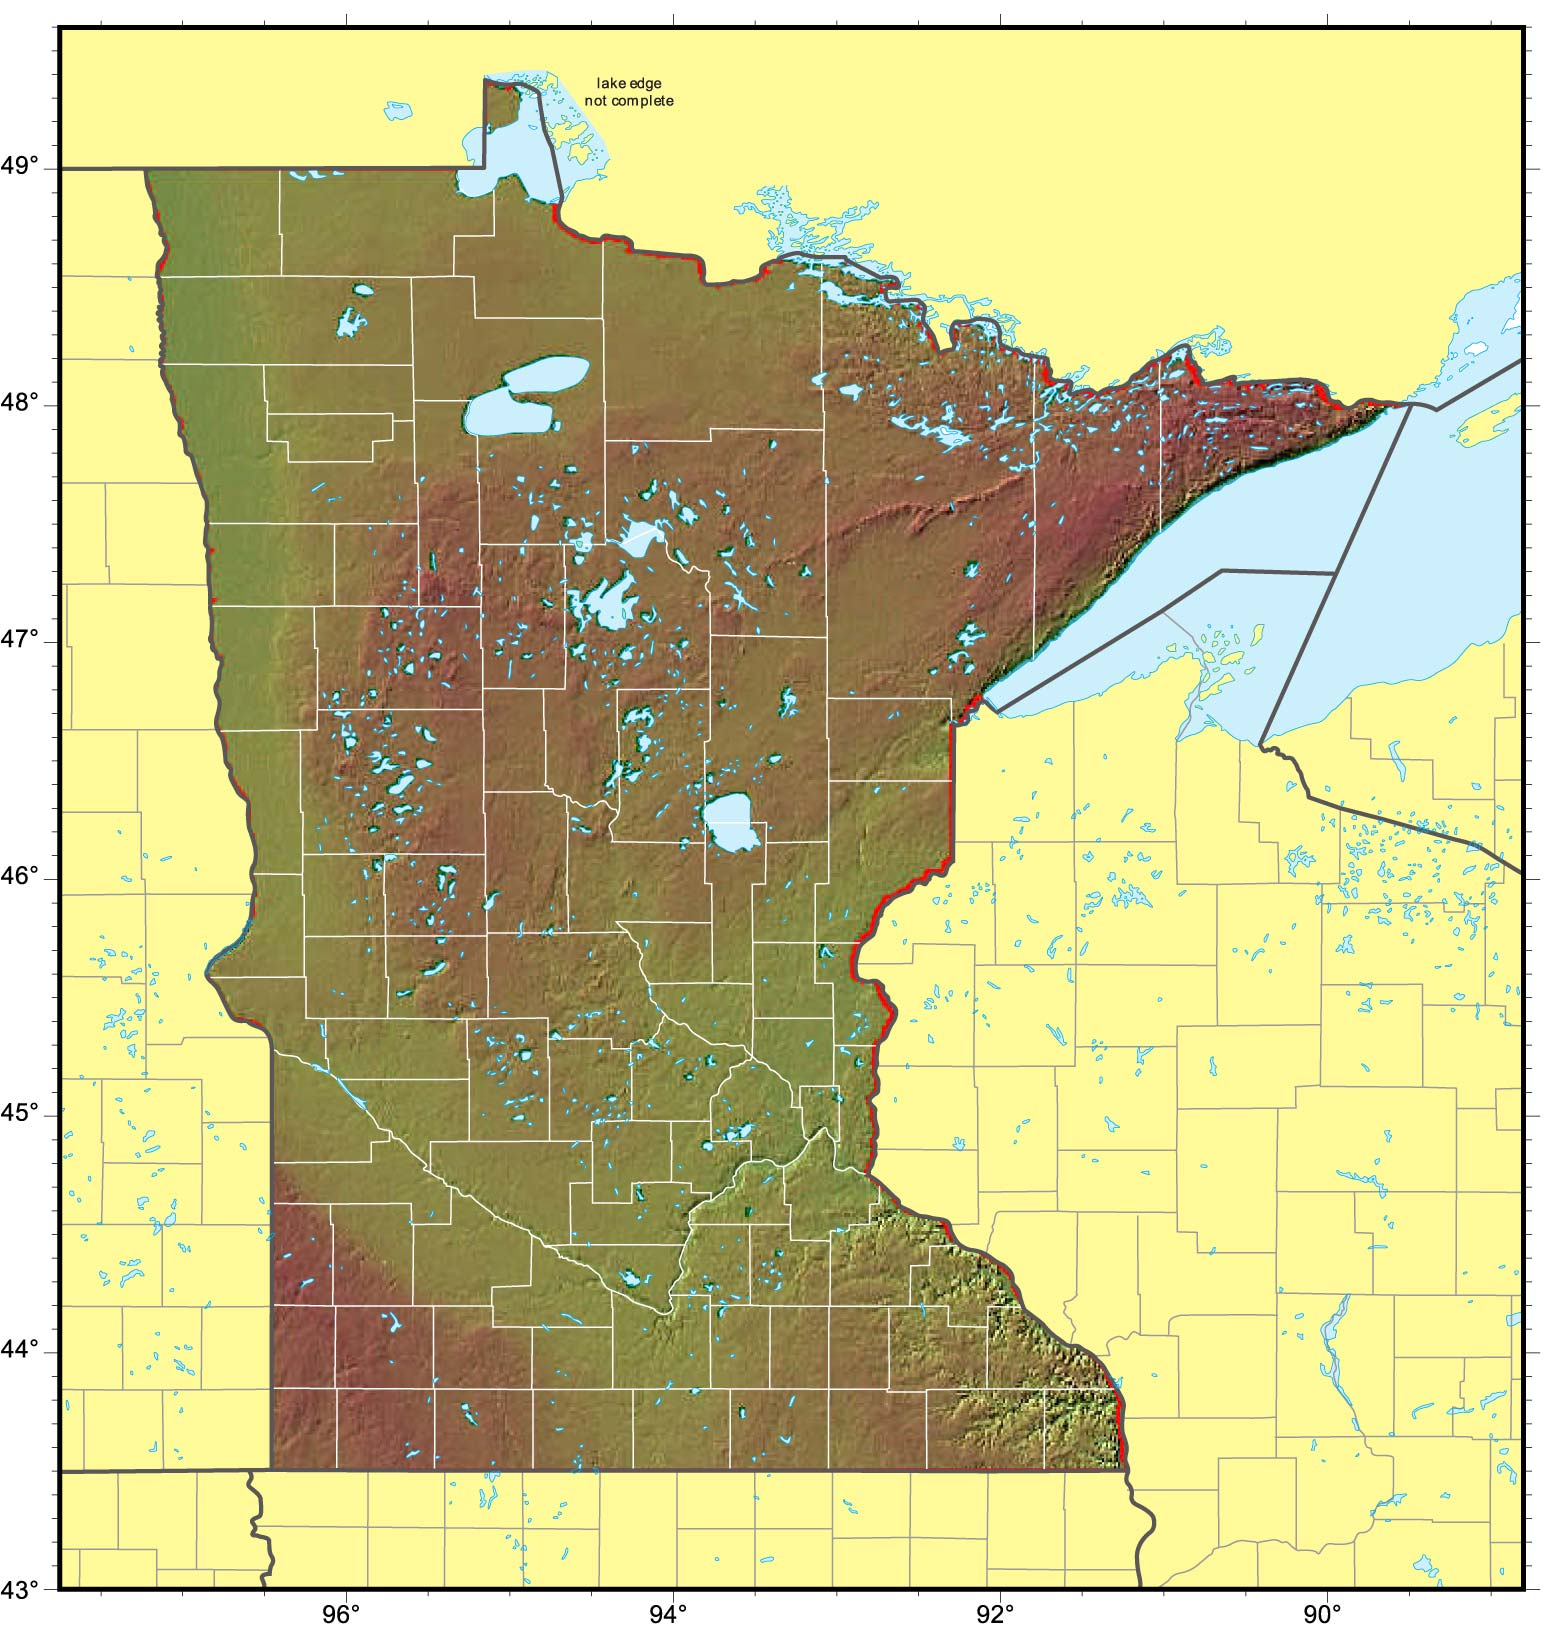 Minnesota Relief Map Mapsof Net